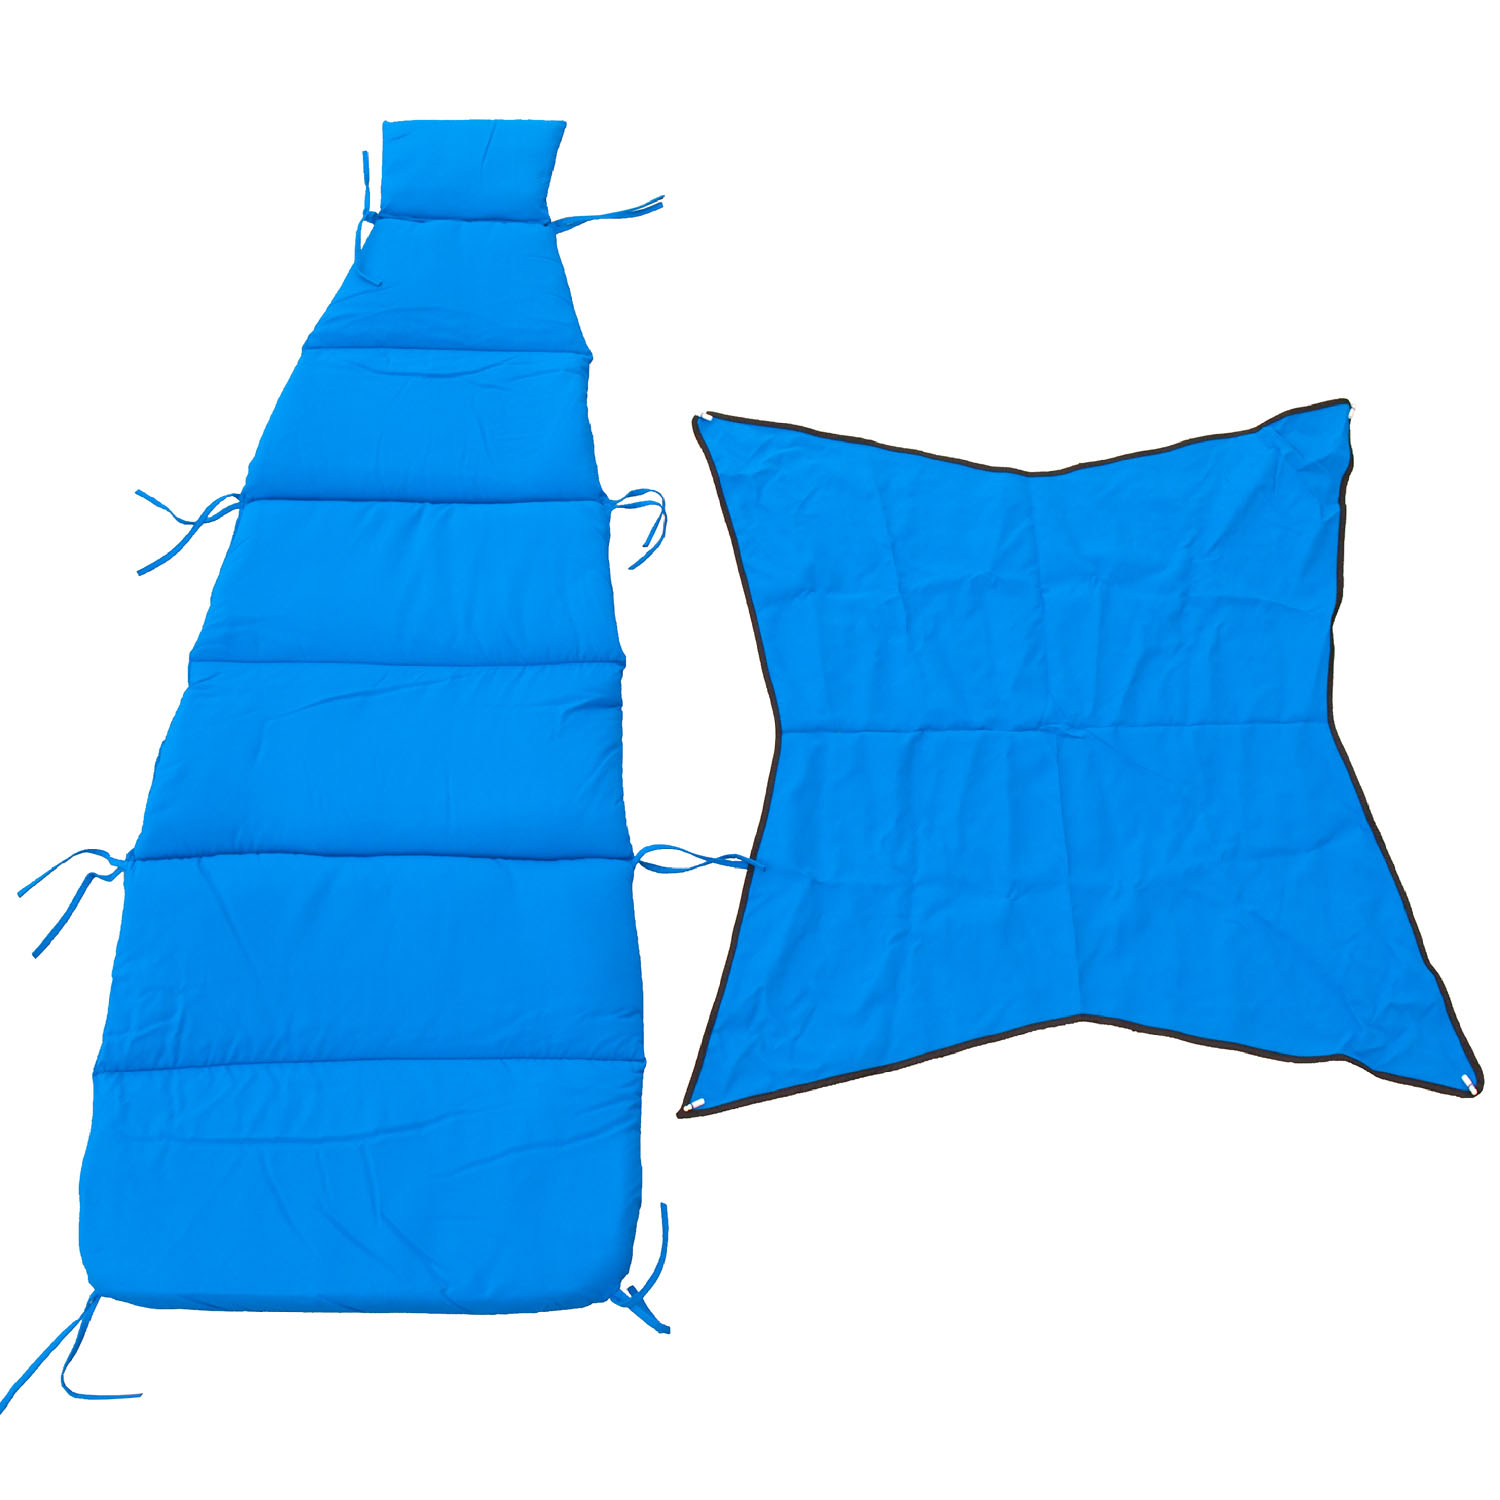 Cloud-9 Royal Blue Pad/Pillow/Canopy Set